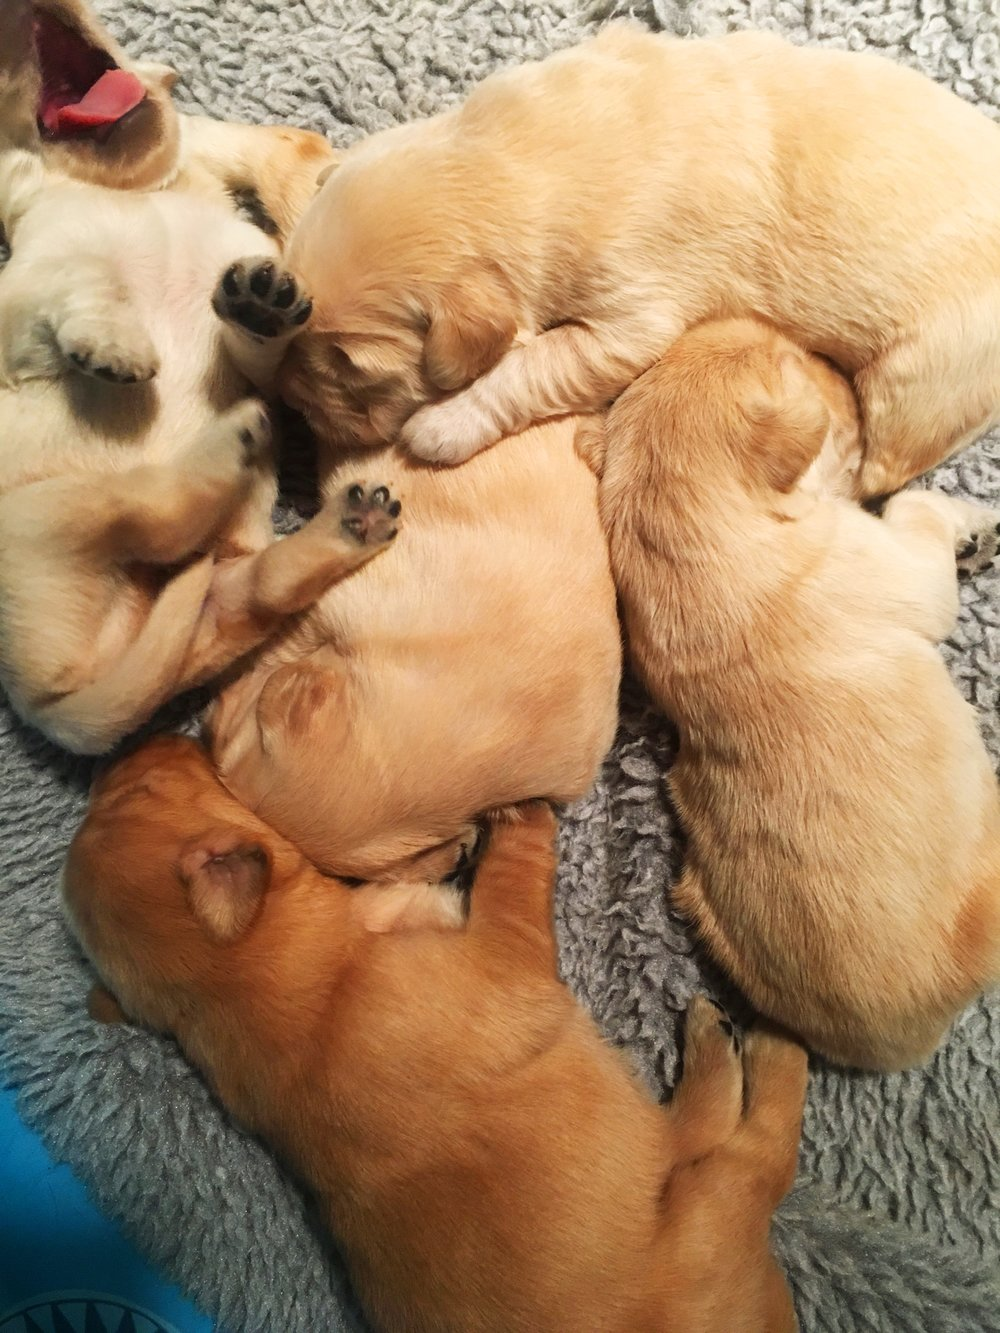 Visiting a cute pile of puppies!